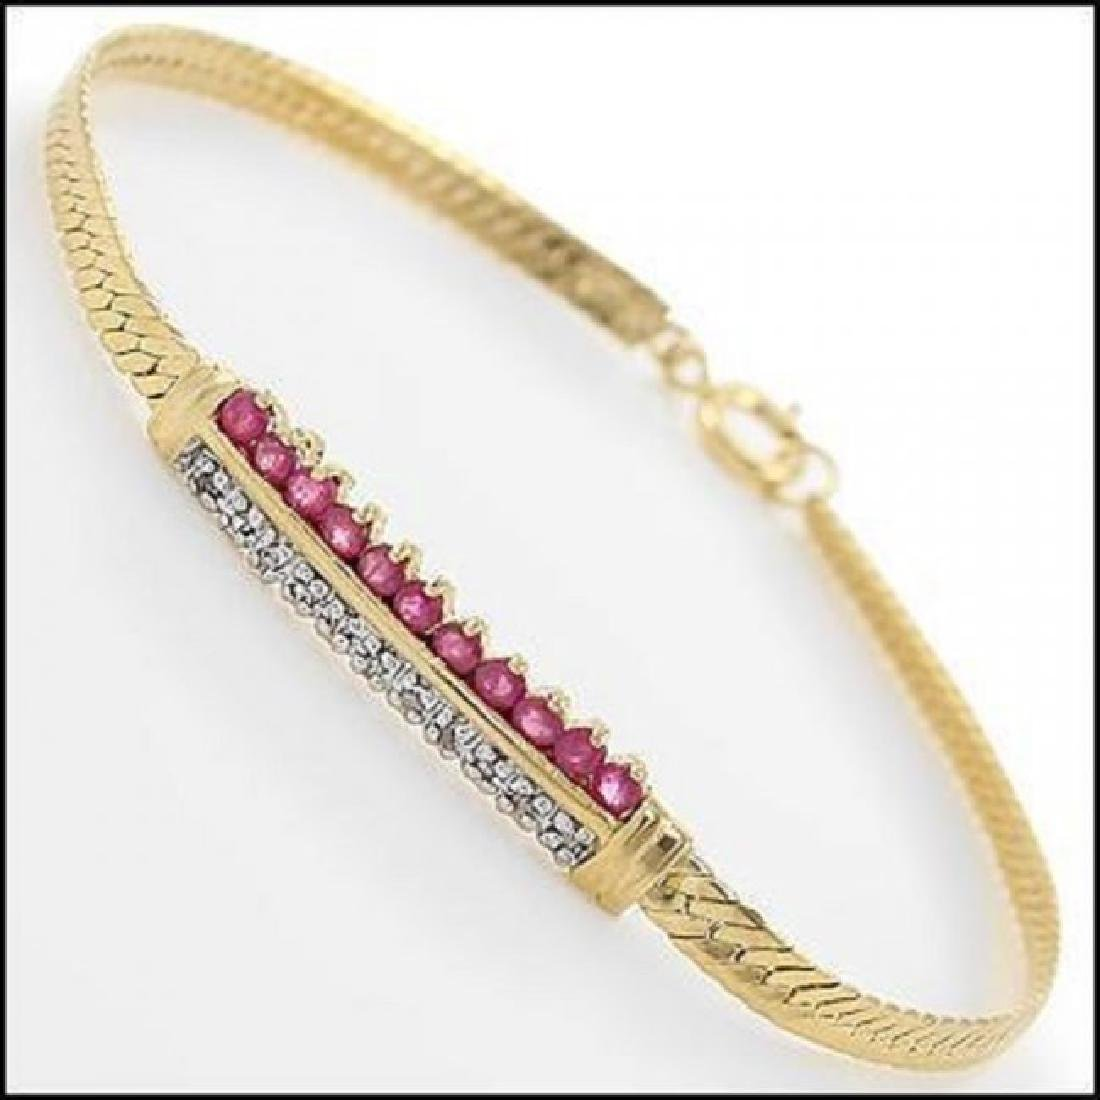 3.39 CT Ruby & Diamond Designer Bracelet $960